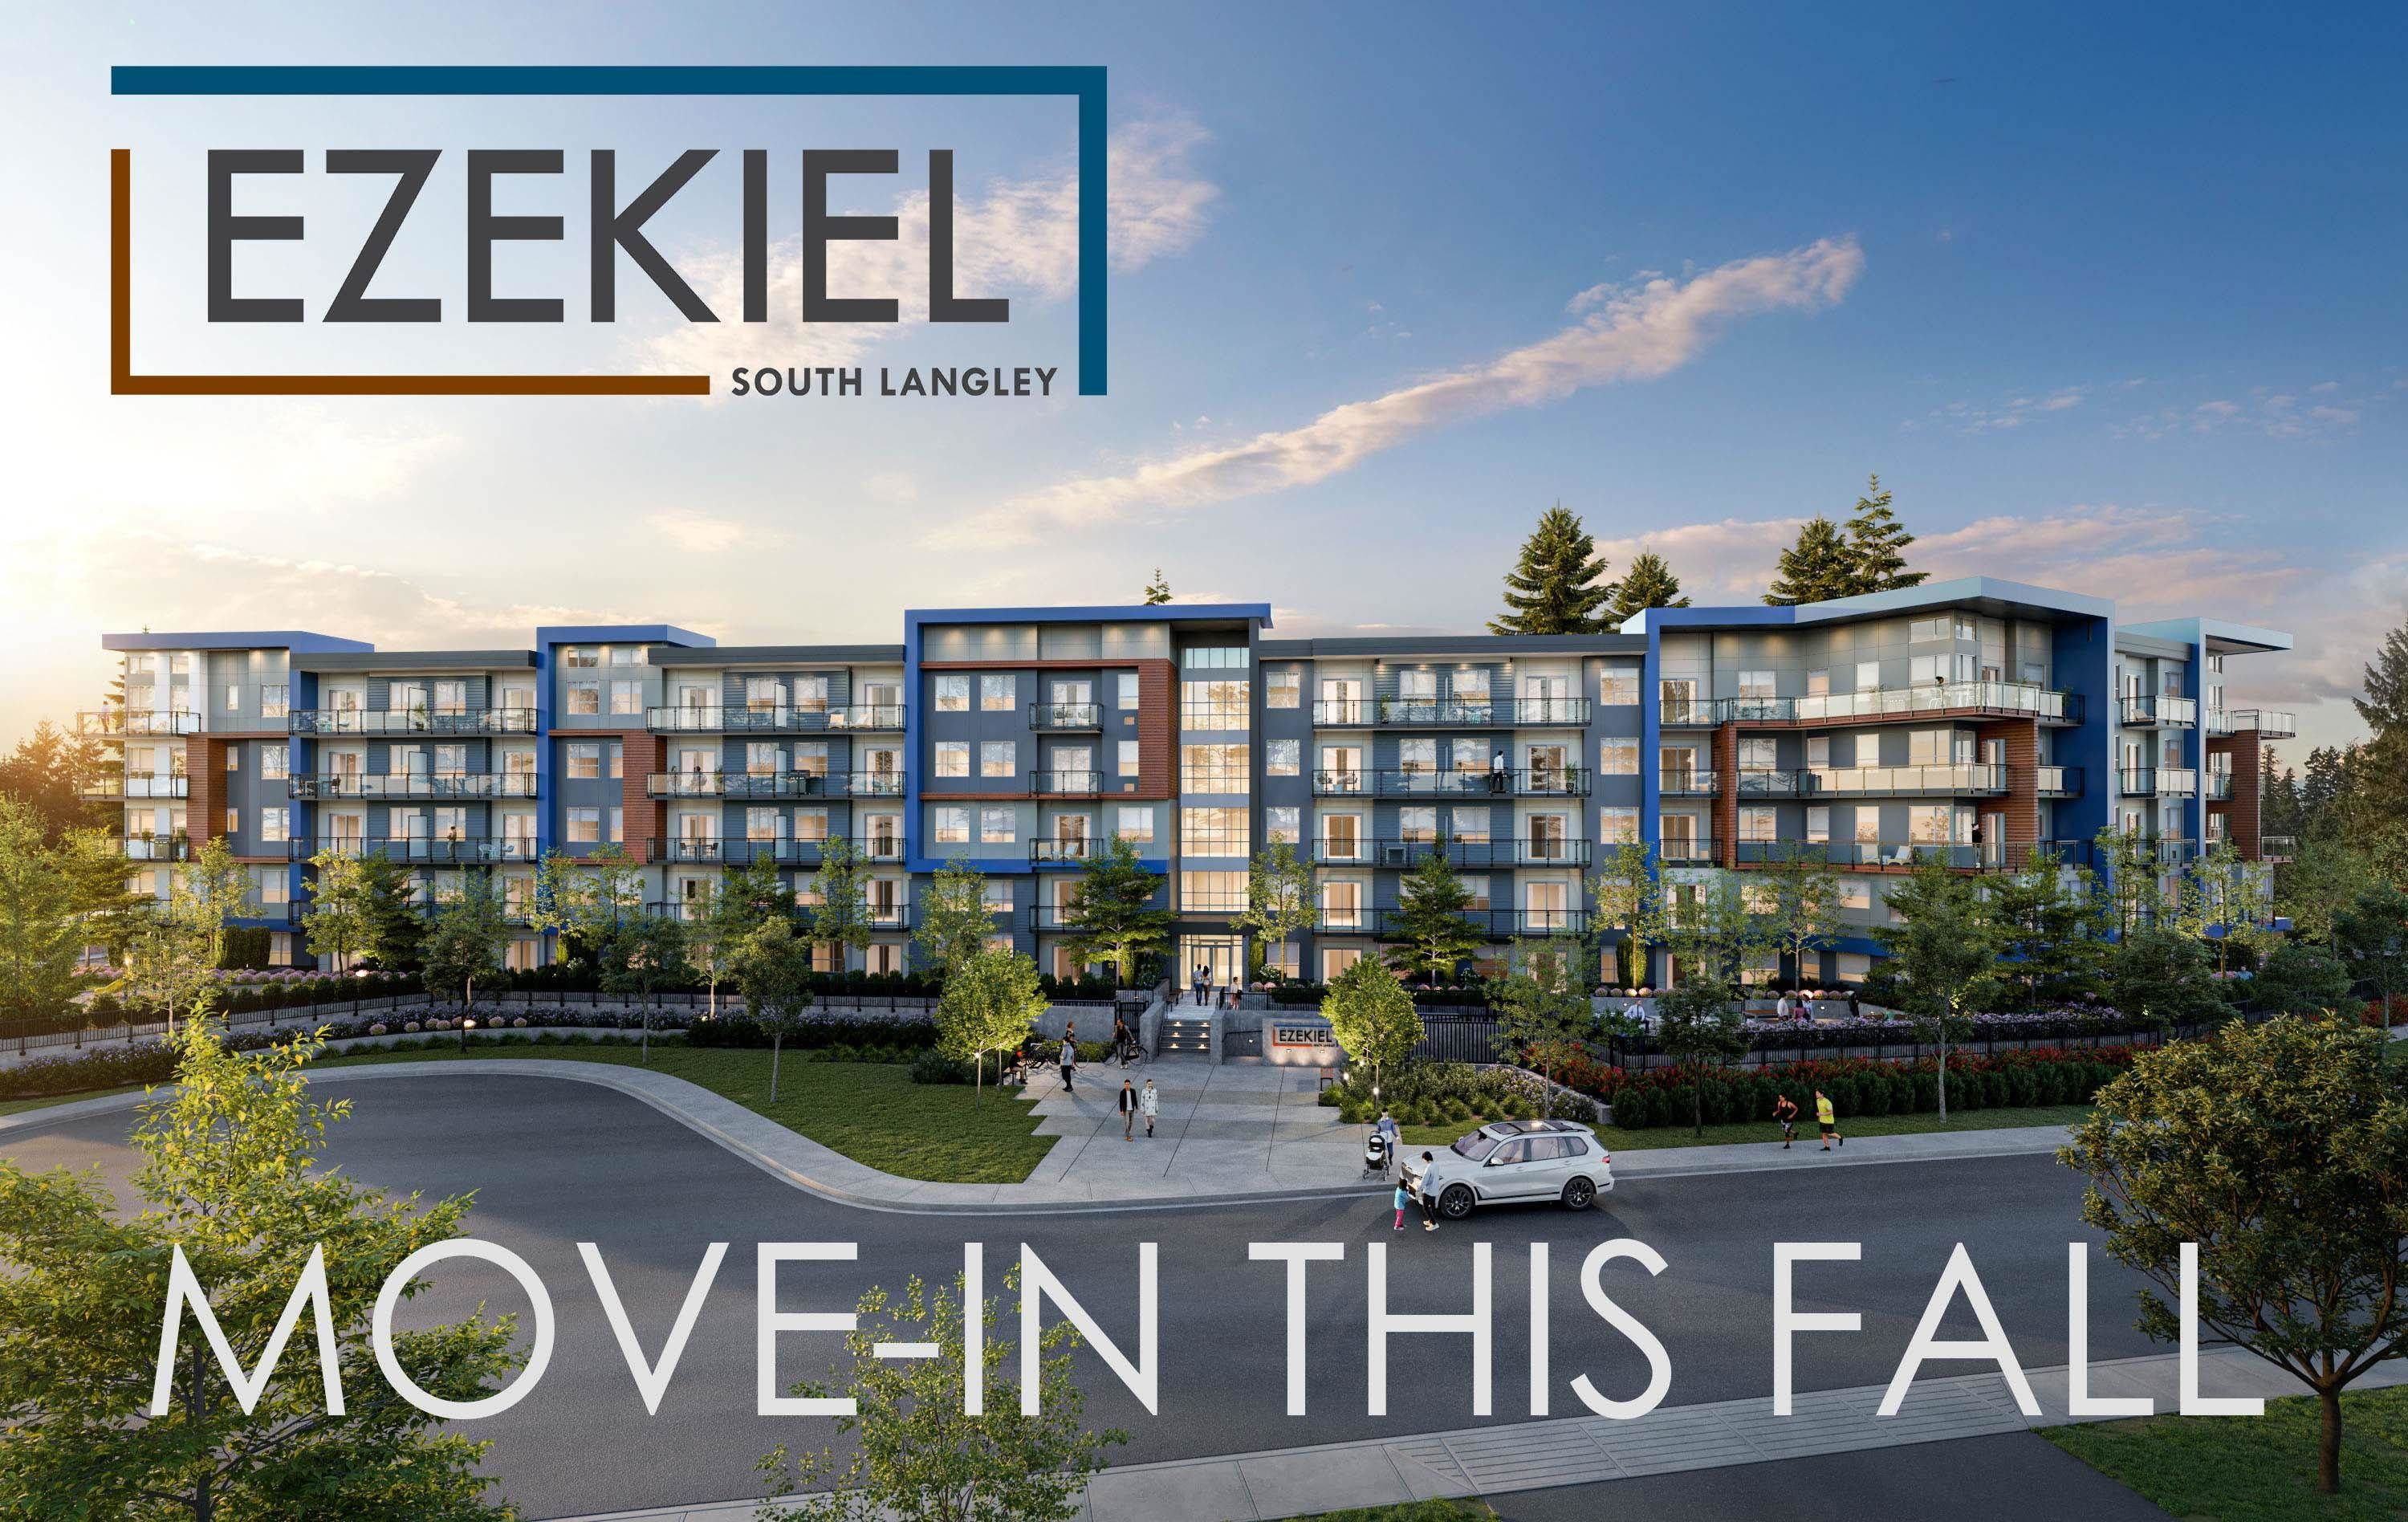 """Main Photo: 321 5486 199A Street in Langley: Langley City Condo for sale in """"Ezekiel"""" : MLS®# R2618784"""